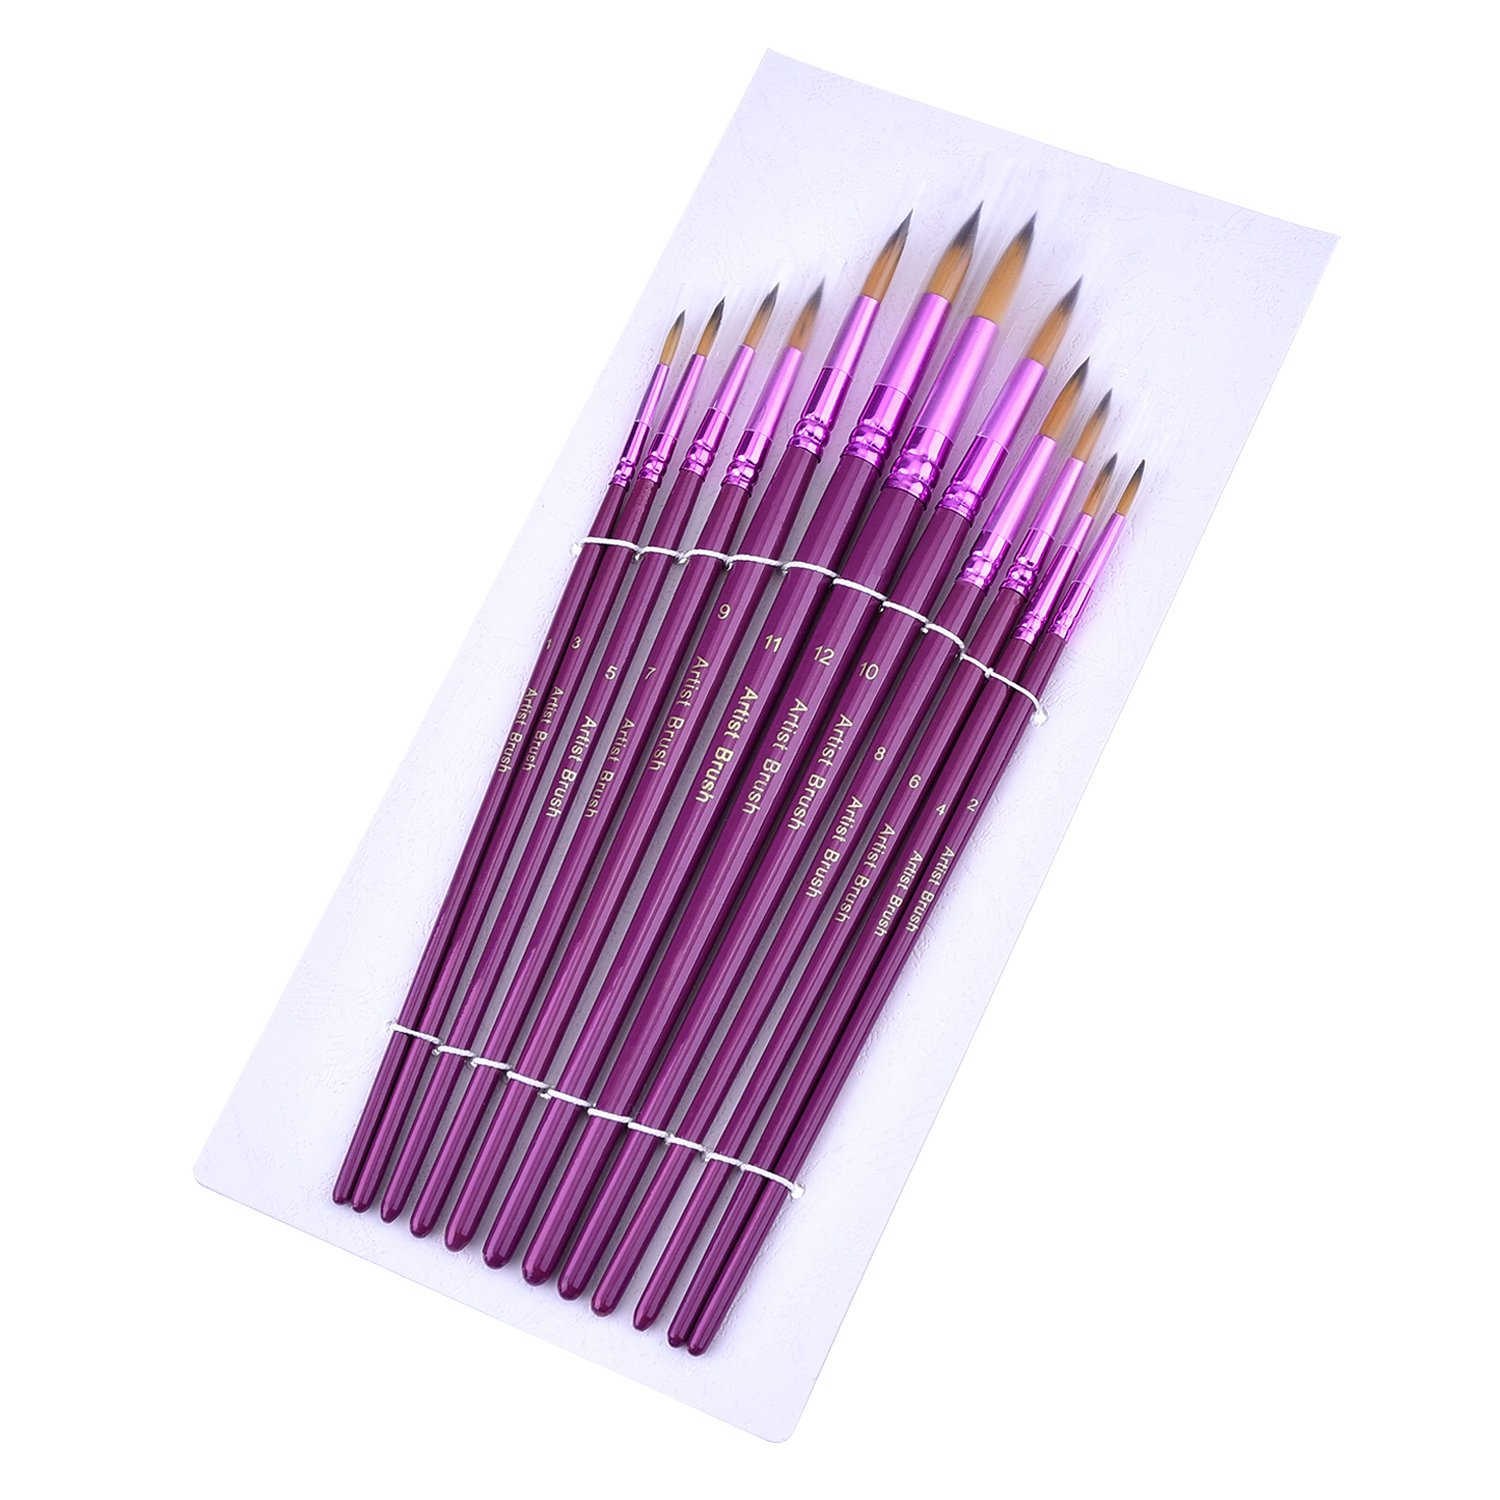 Purple Mudder 12 Pieces Artist Paint Brushes Fine Paint Brush for Acrylic Watercolor Oil Painting